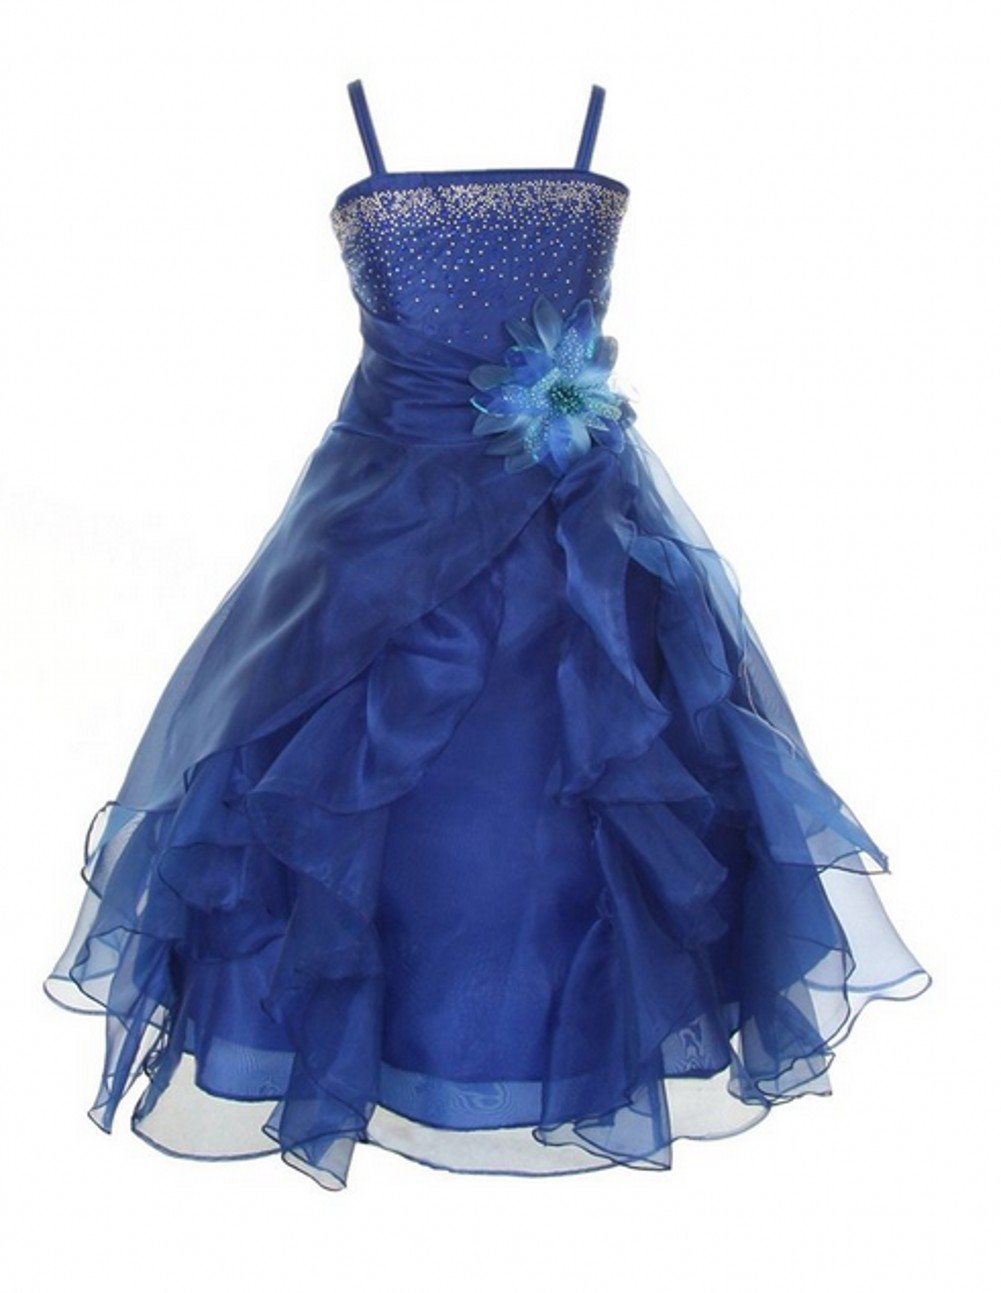 Love Dress Girls Cascading Crystal Organza Rhinestone Party Dress Royal Blue Us 12